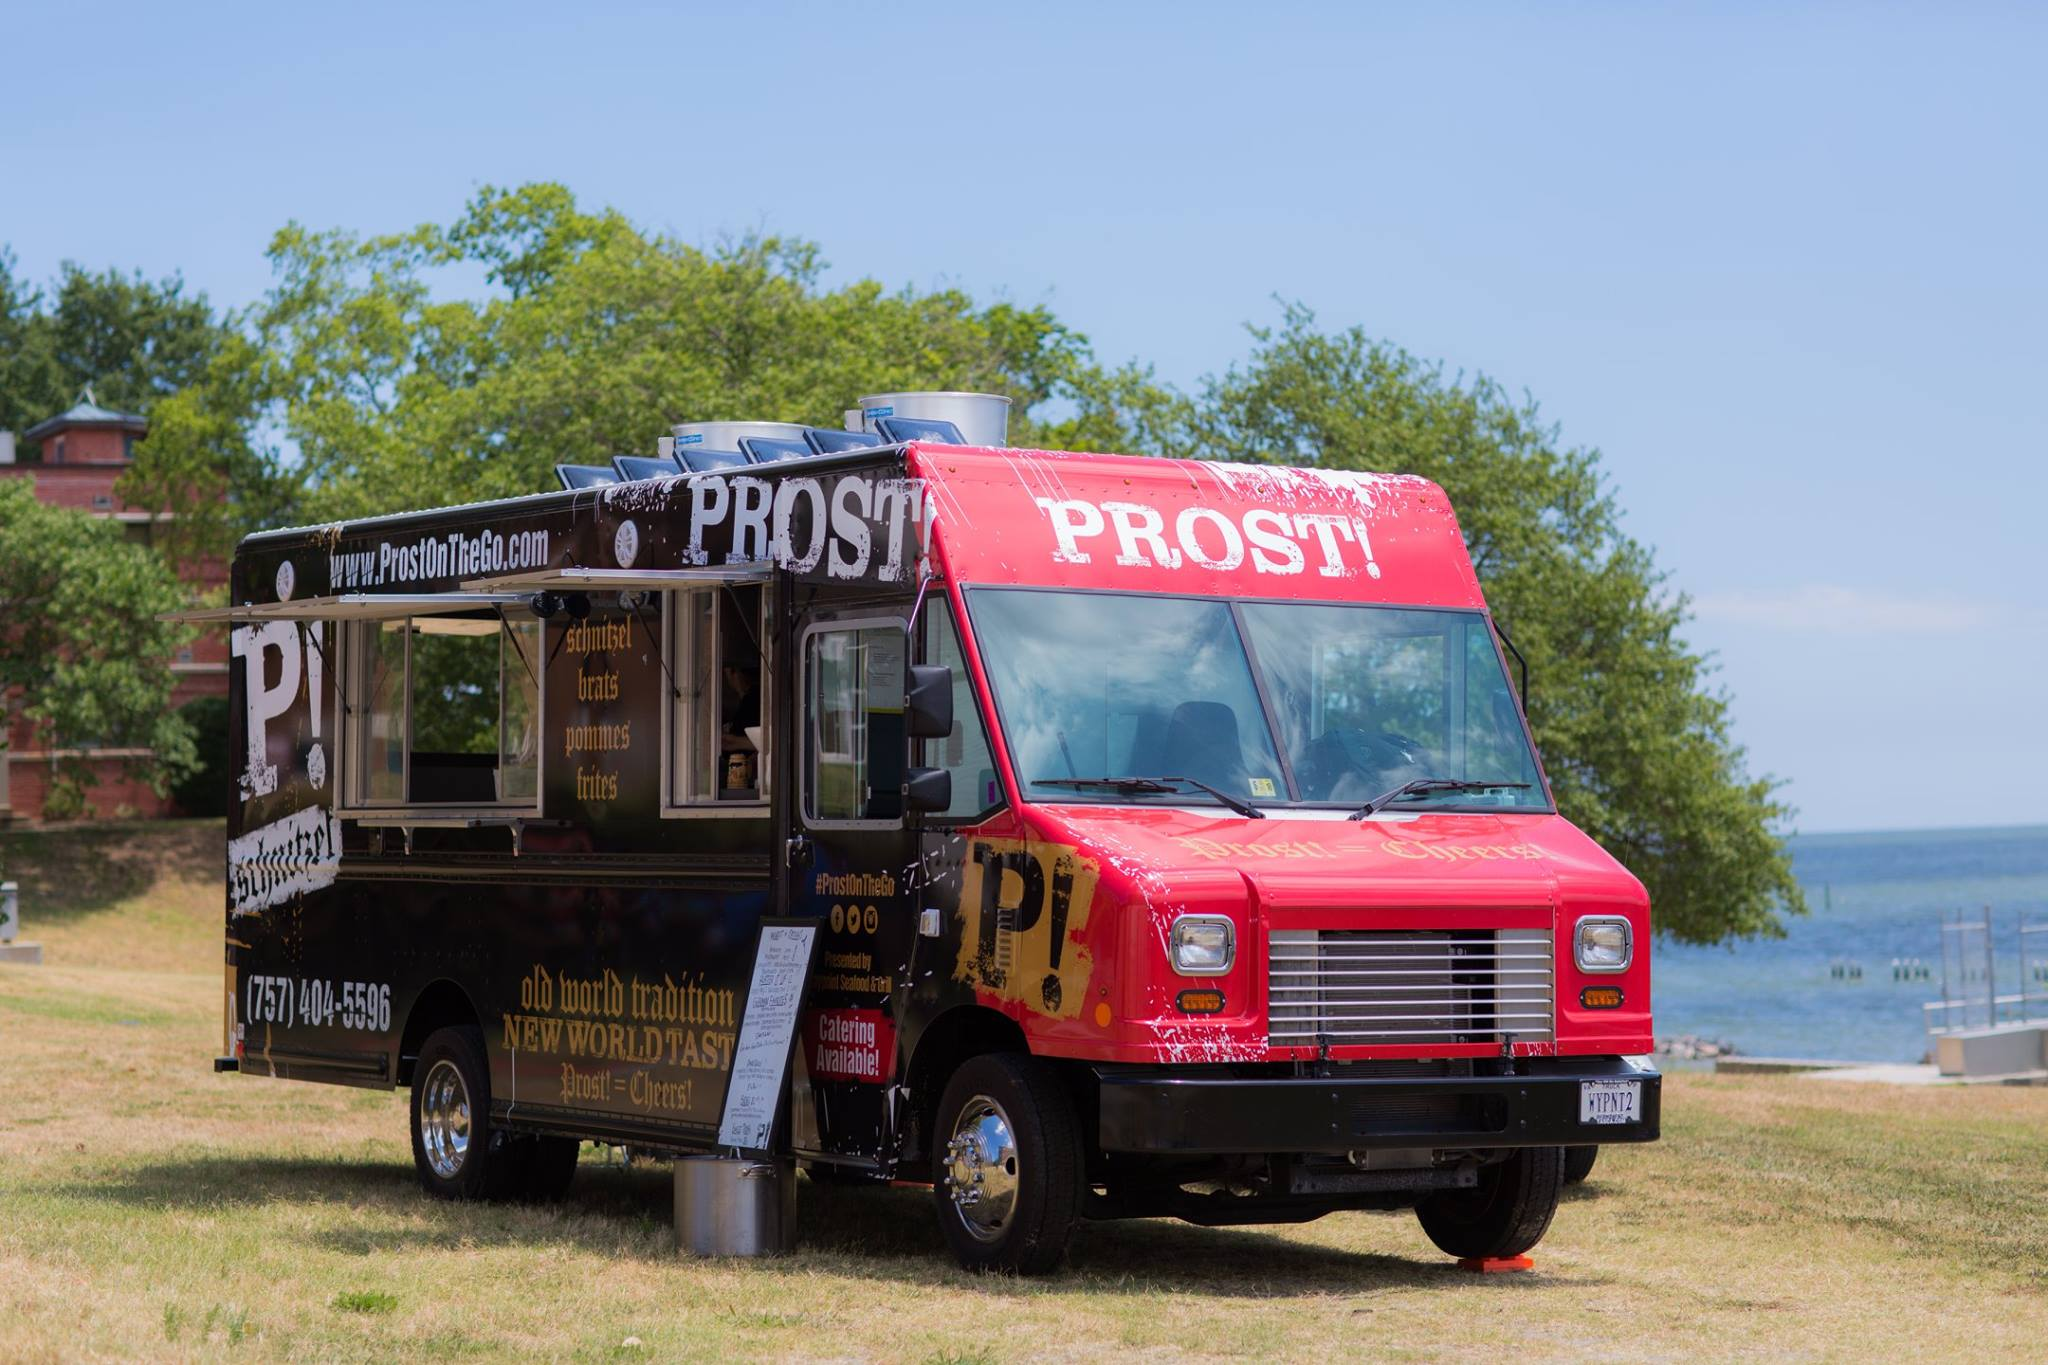 PROST! food truck from Waypoint Grill williamsburg virginia